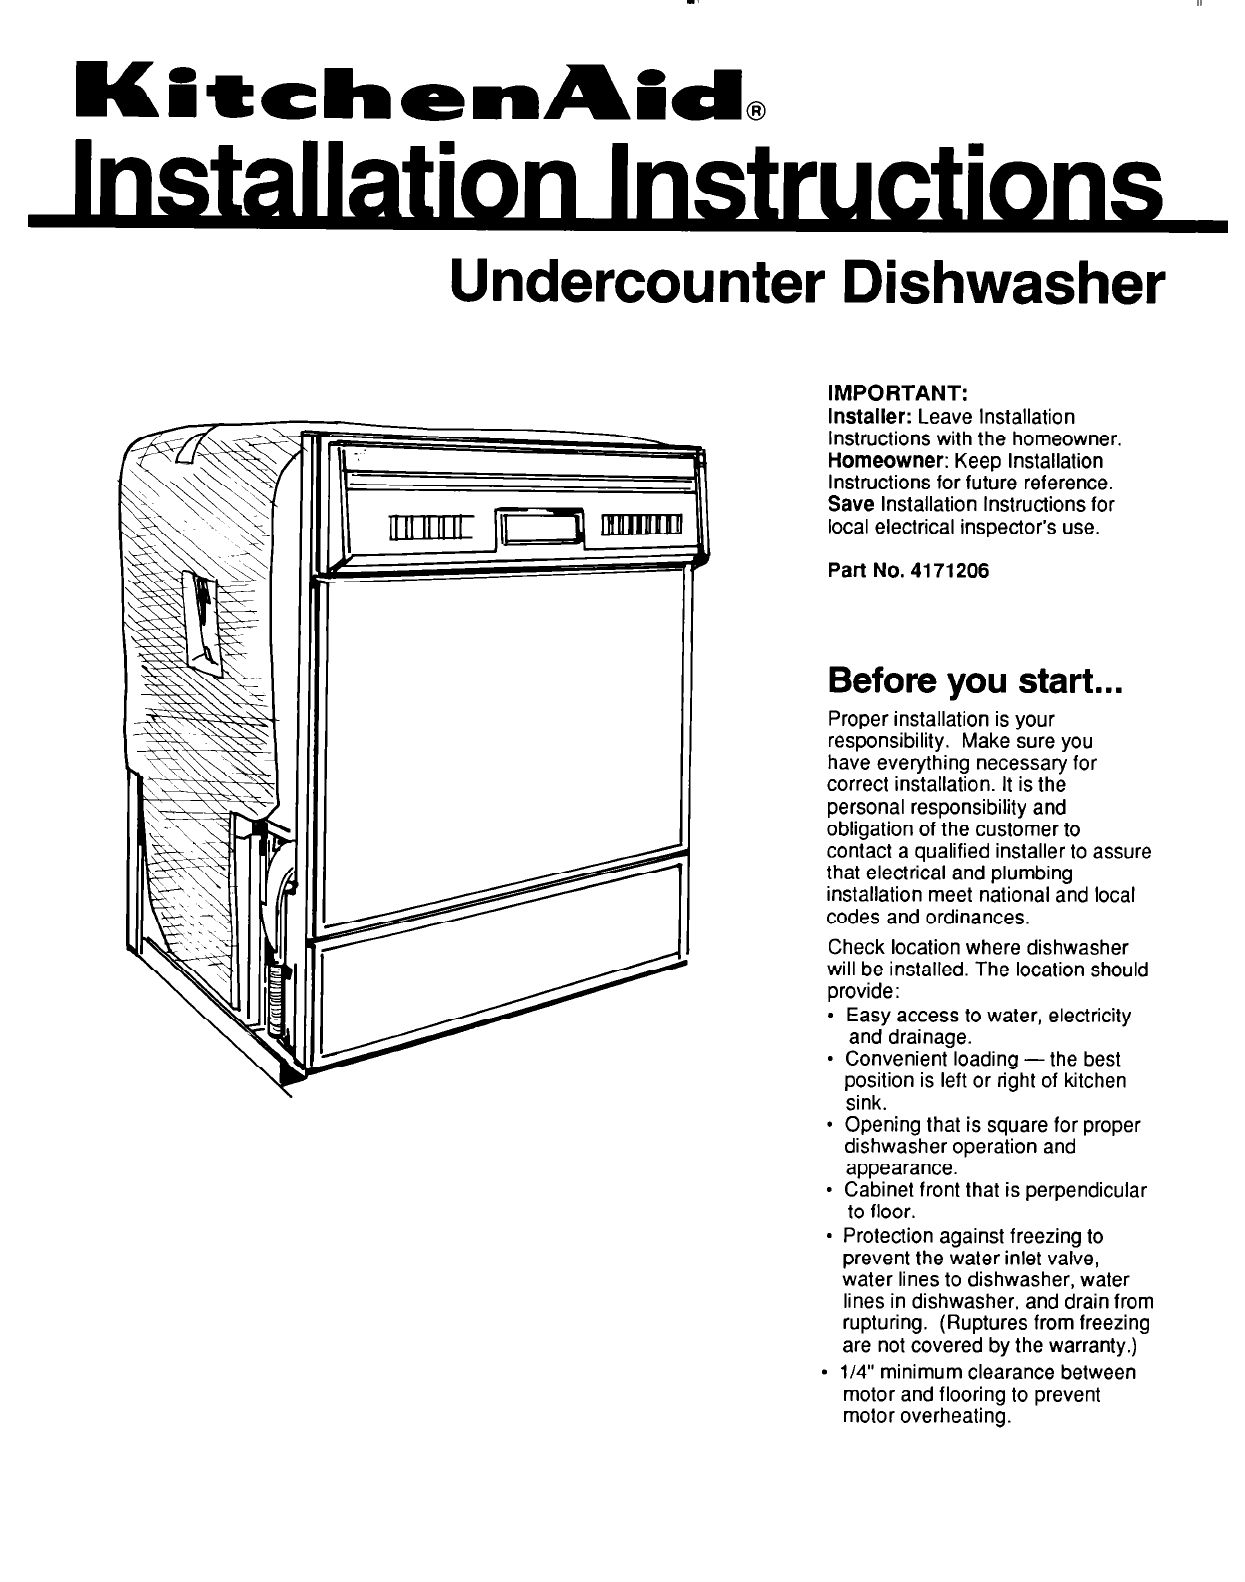 Read Kitchenaid Dishwasher Manual For Perfect Installation Manual Guide